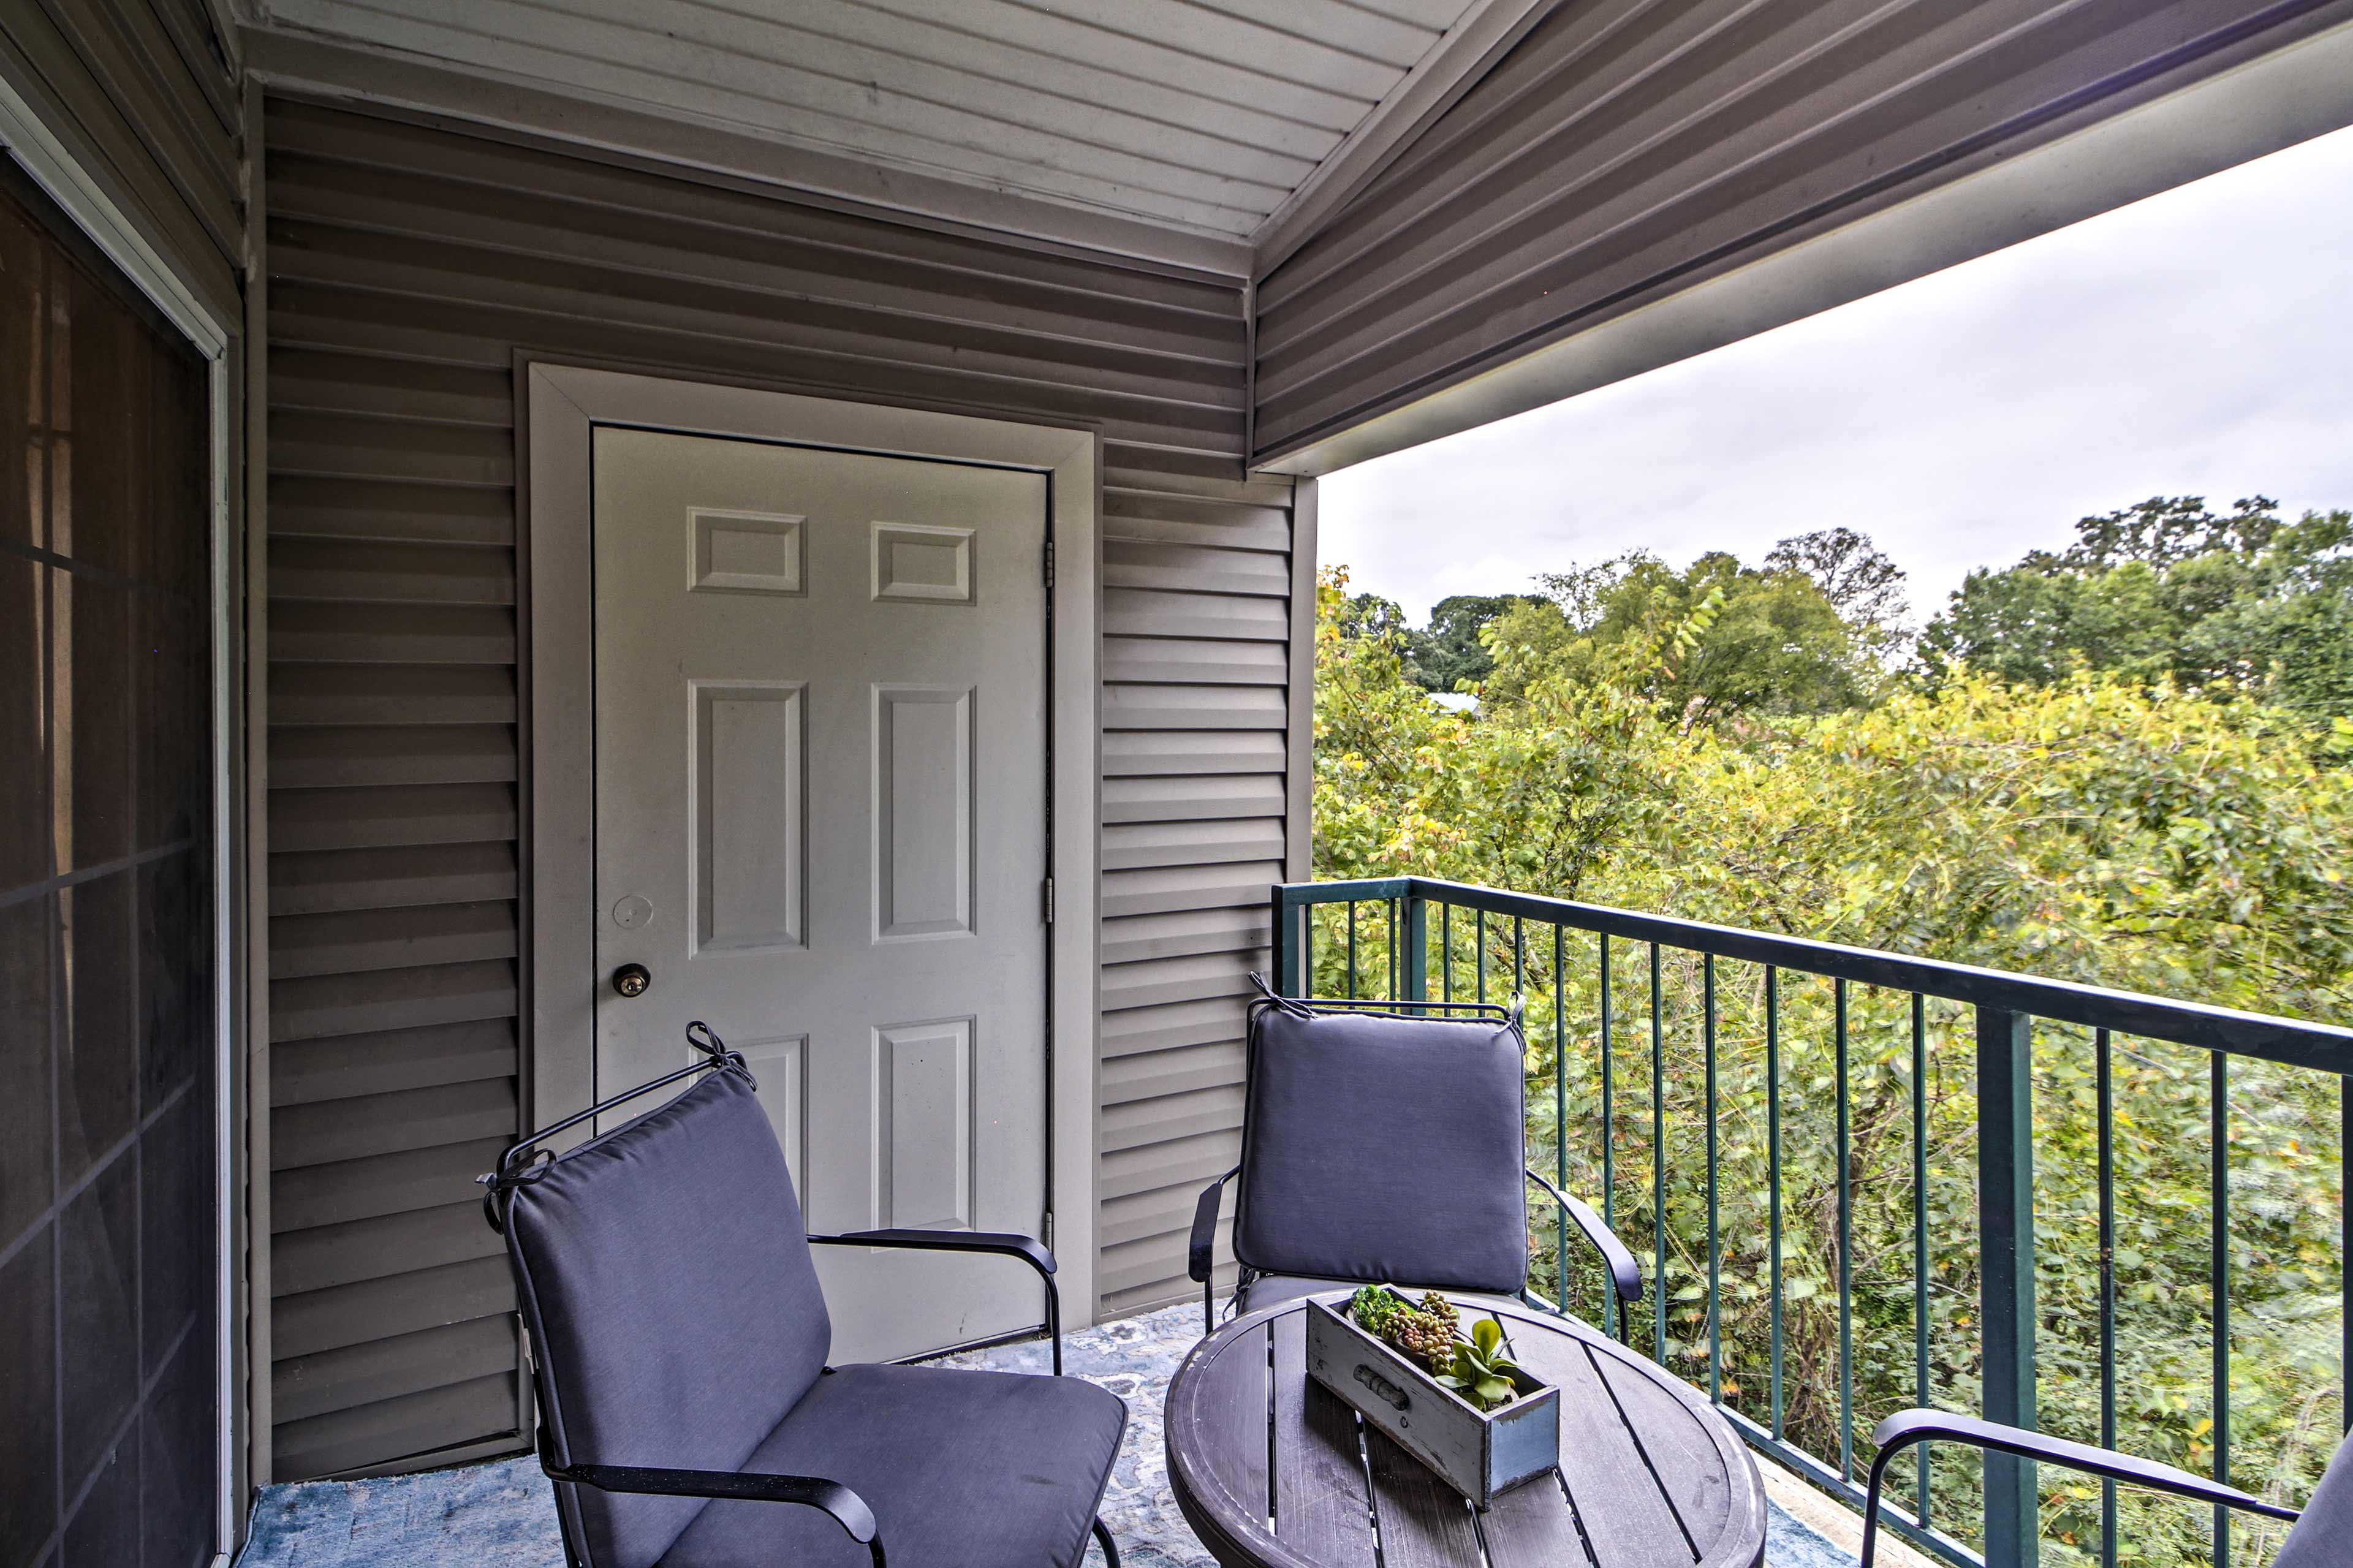 The 2-bedroom, 2-bath unit has room for 6 and access to resort amenities.